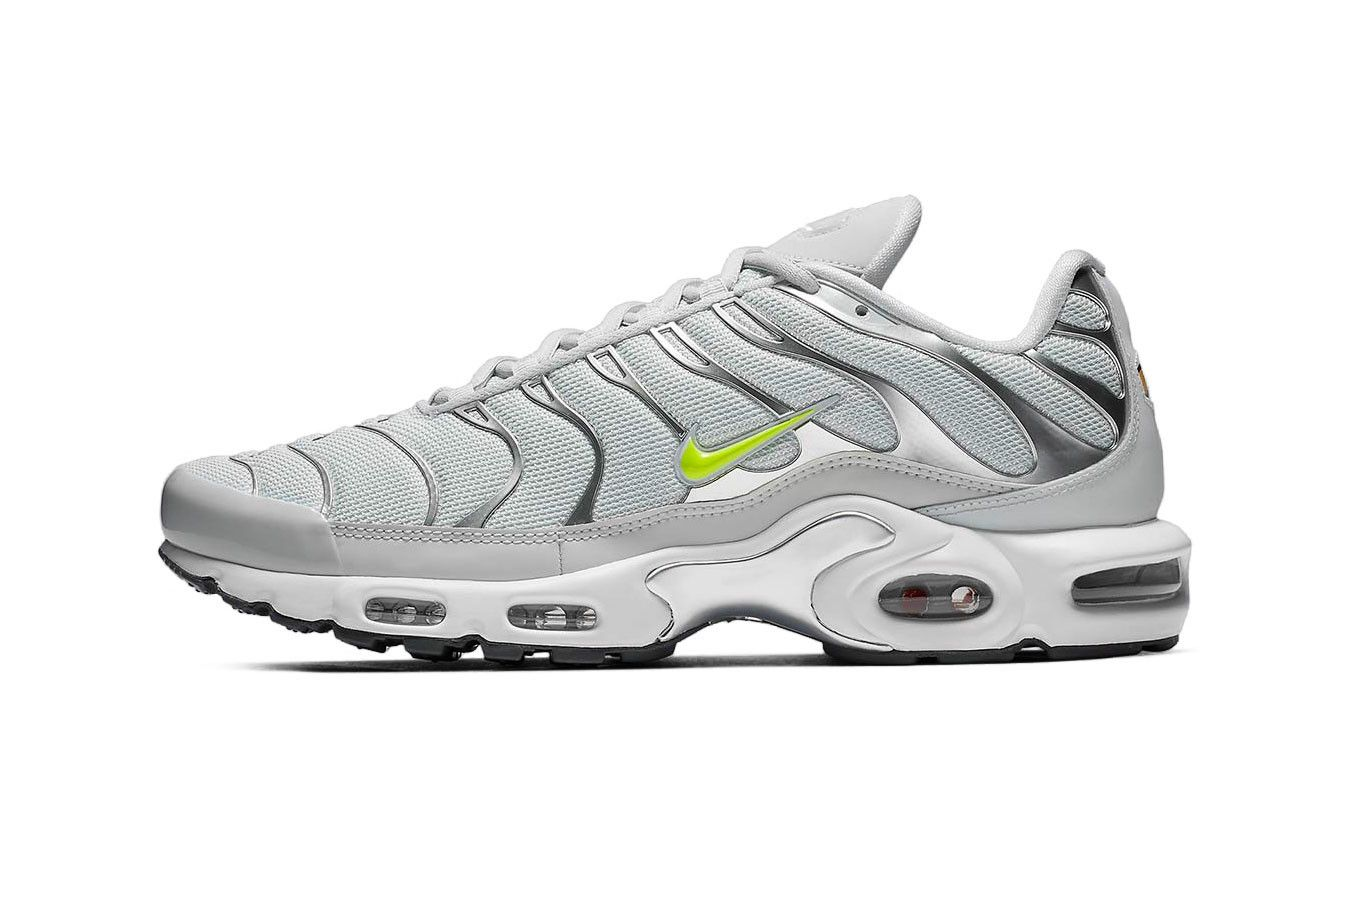 The Nike Air Max Plus Arrives In A Grey Volt Colorway Nike Air Max Plus Nike Air Max Air Max Plus